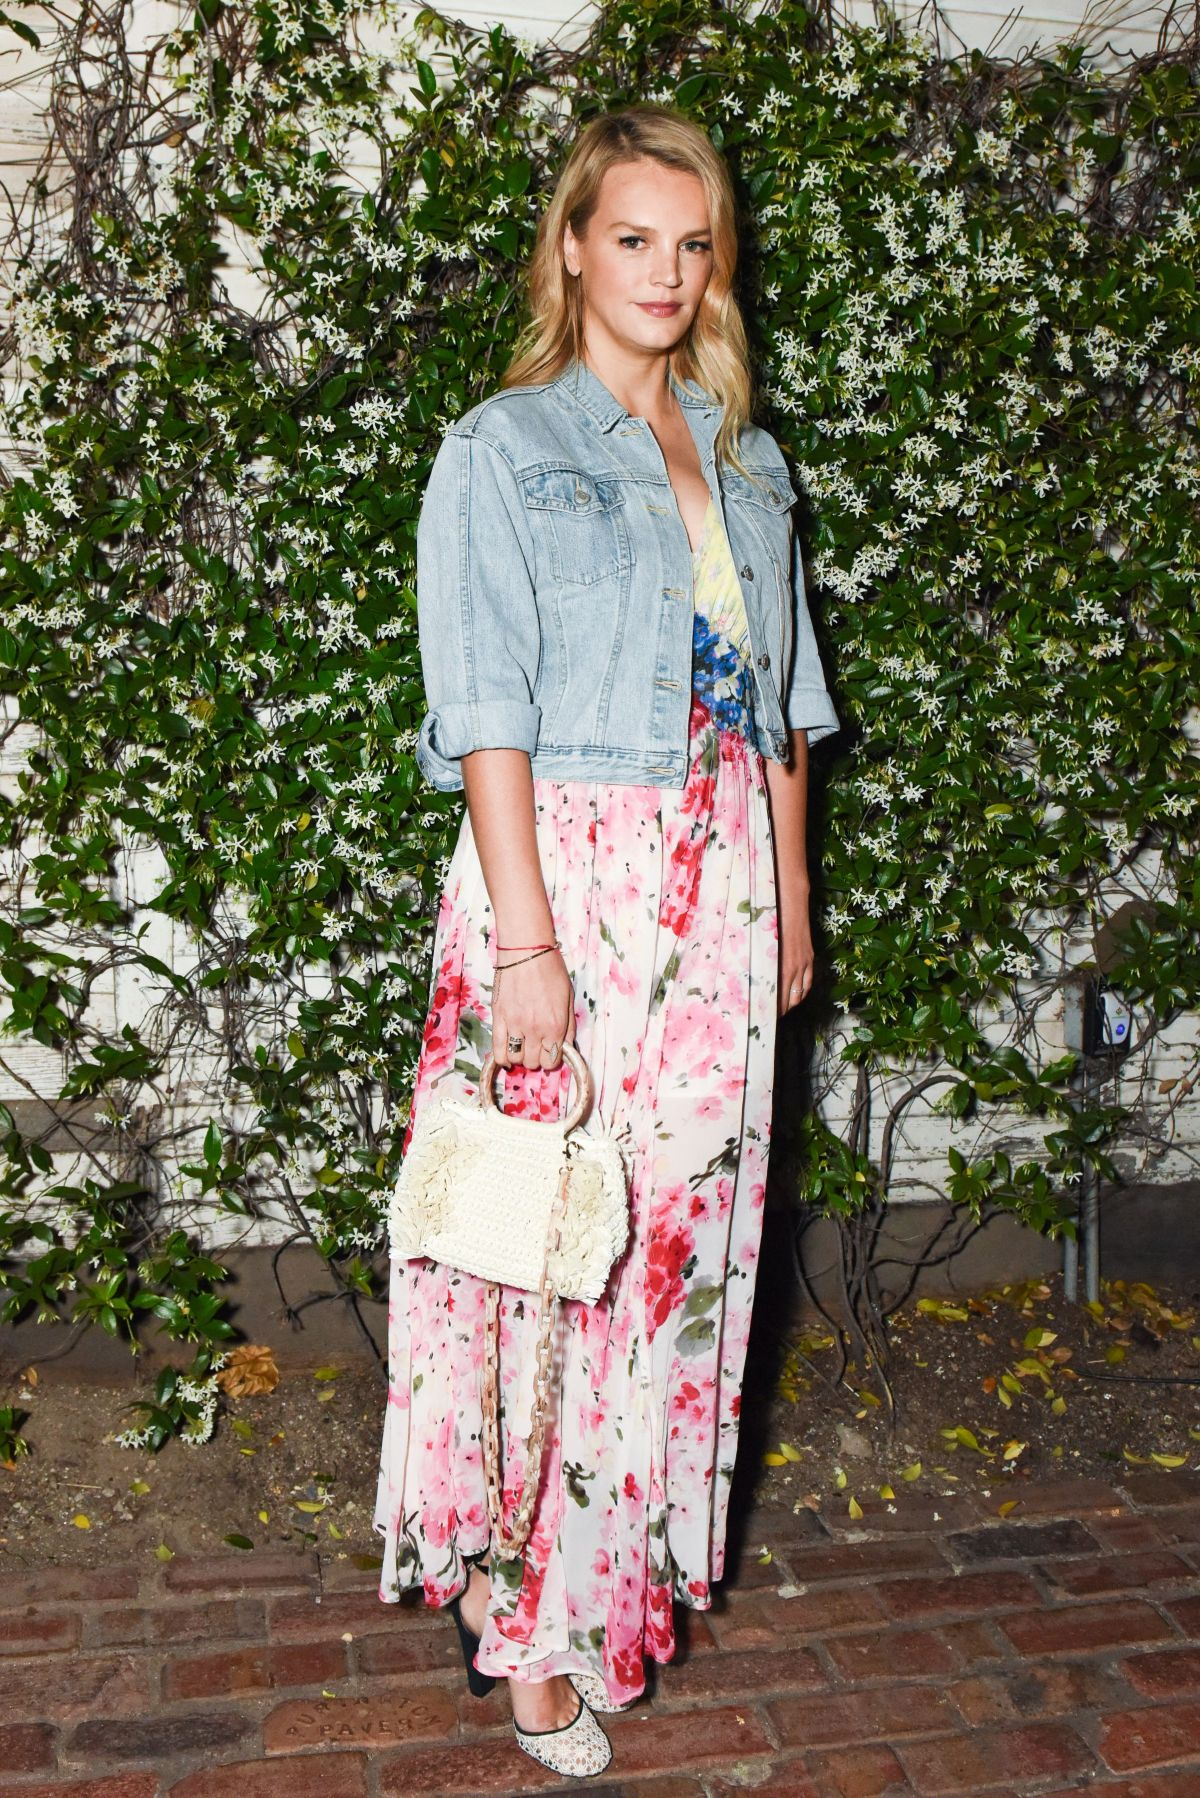 KELLY SAWYER at Sally Singer and Lisa Love Denim Dinner in Los Angeles 04/05/2017